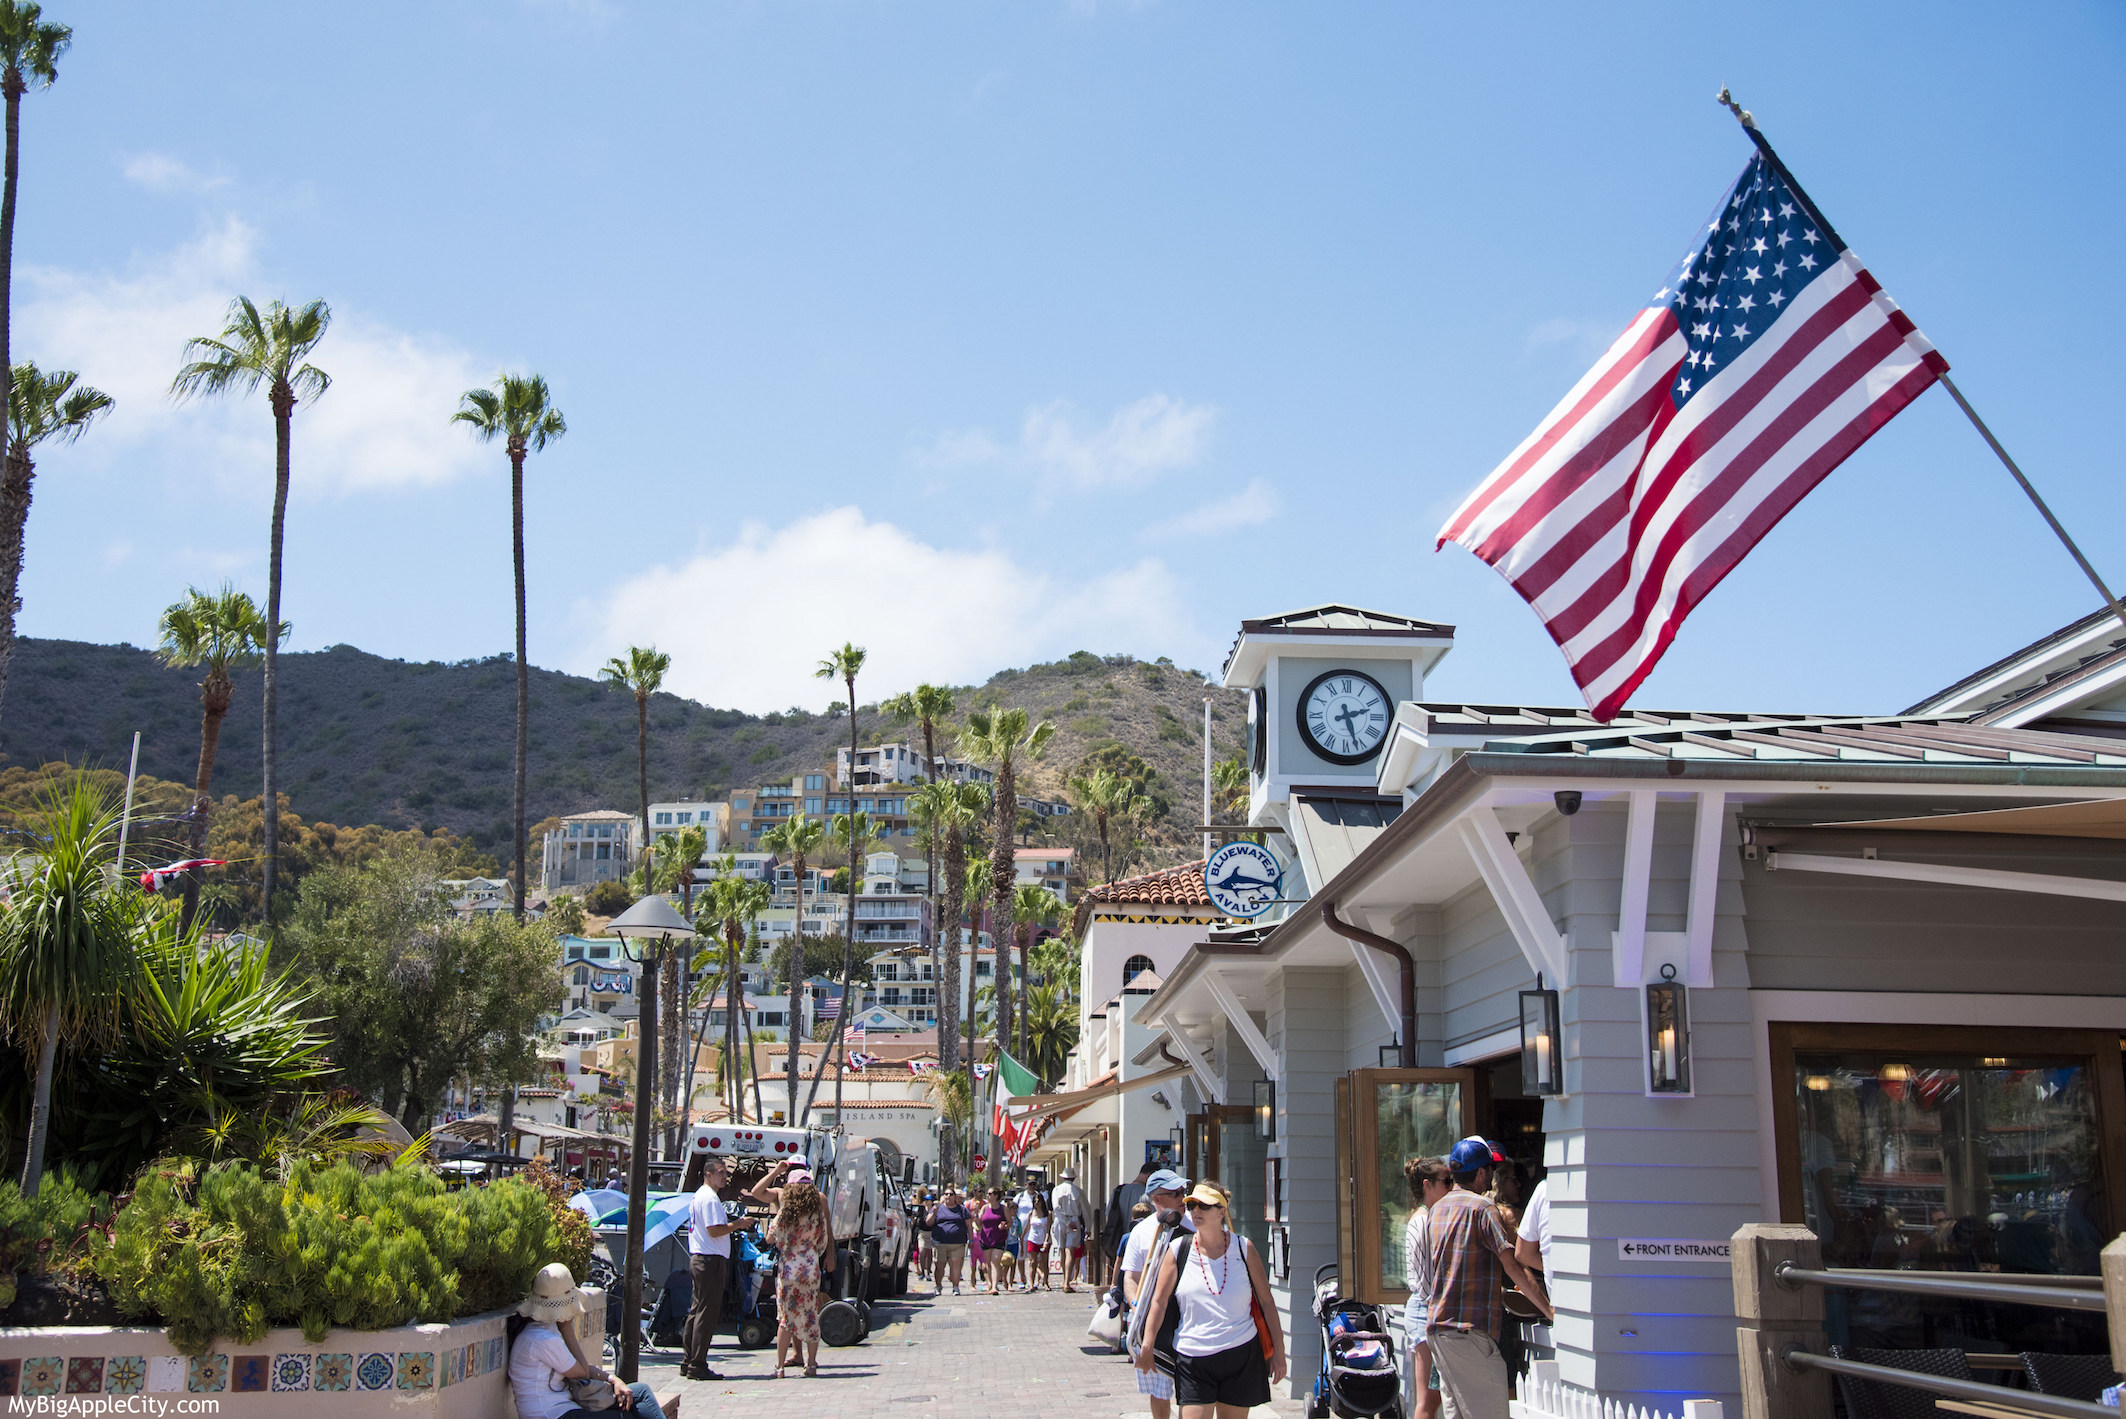 Voyage-californie-road-trip-catalina-island-blog-mybigapplecity